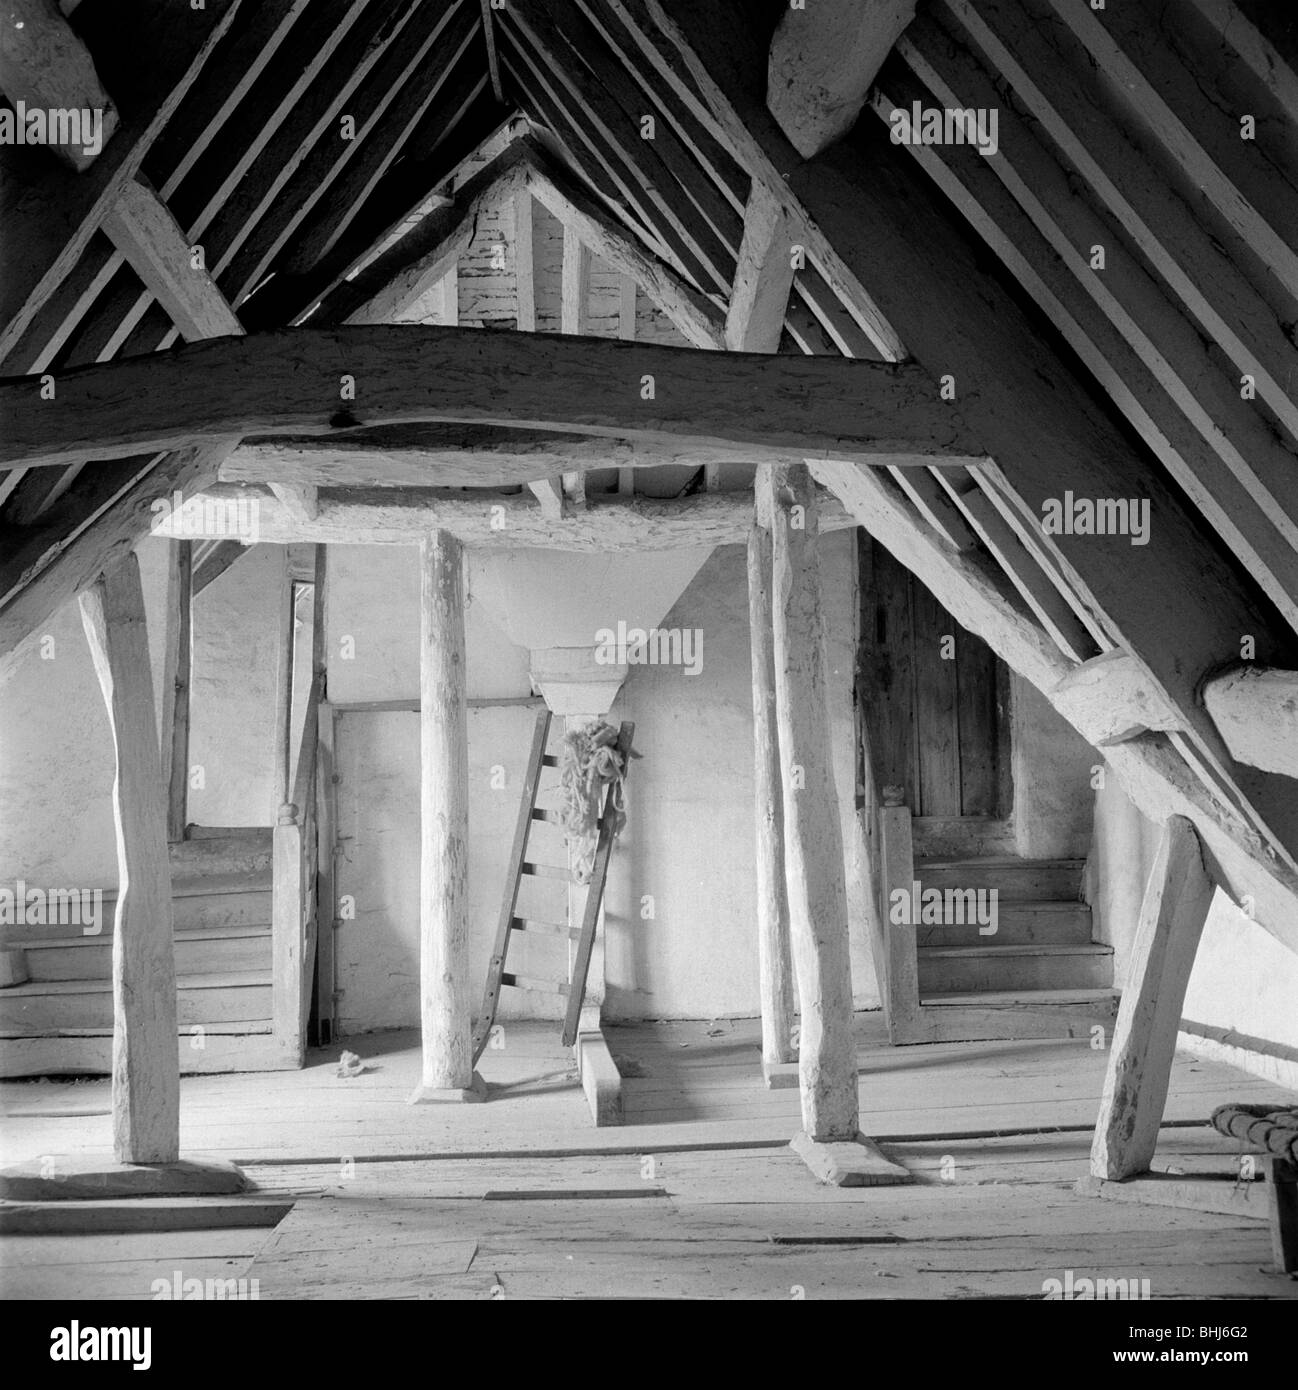 An attic in Kelmscott Manor Oxfordshire 1949. Artist Eric de Maré & An attic in Kelmscott Manor Oxfordshire 1949. Artist: Eric de Maré ...